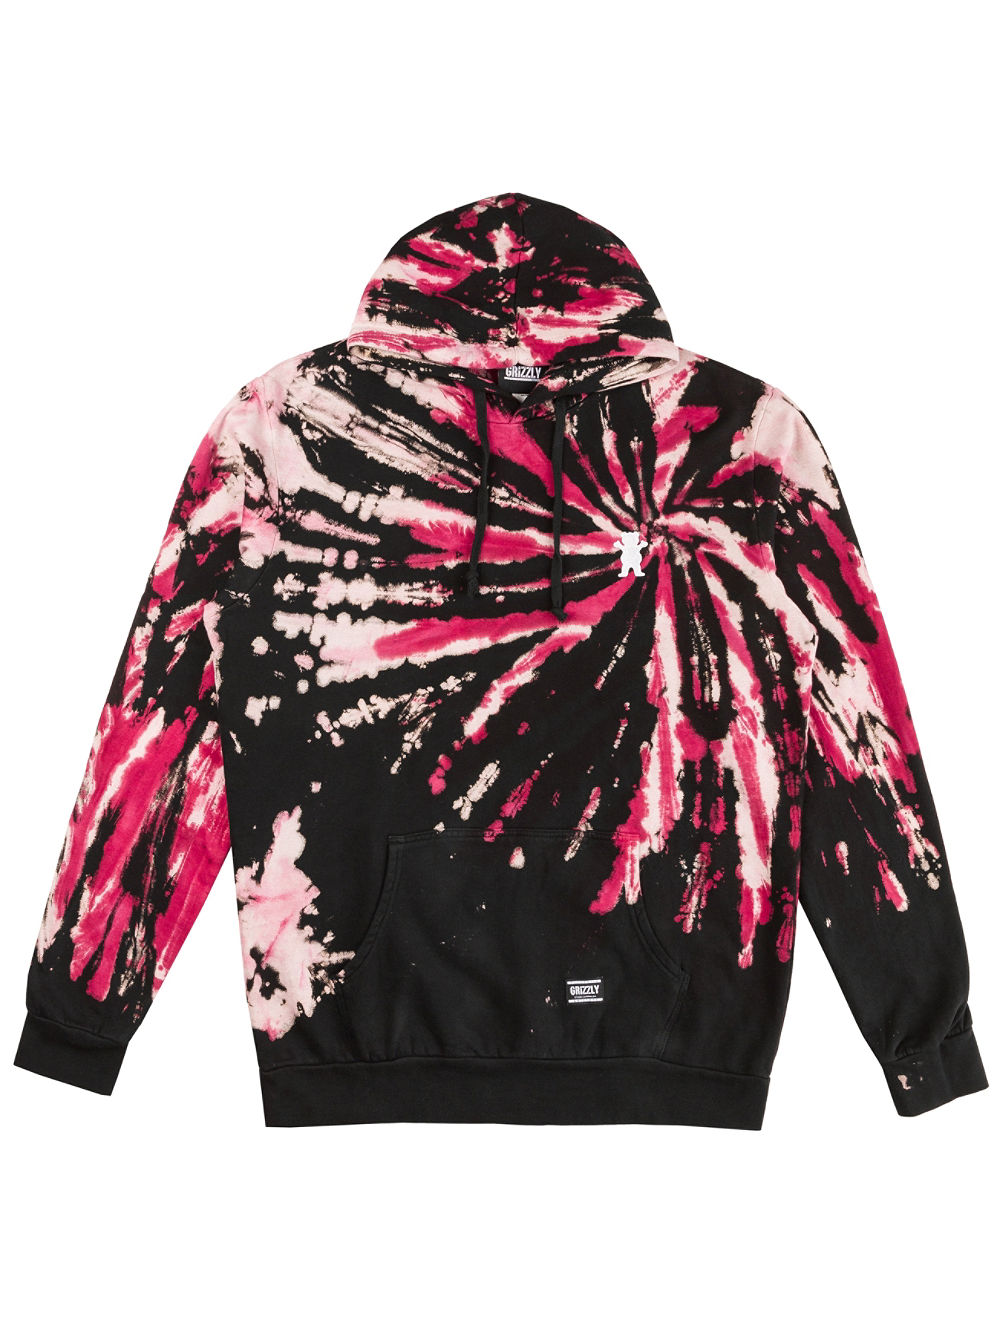 Embroidered Fruit Punch Hoodie